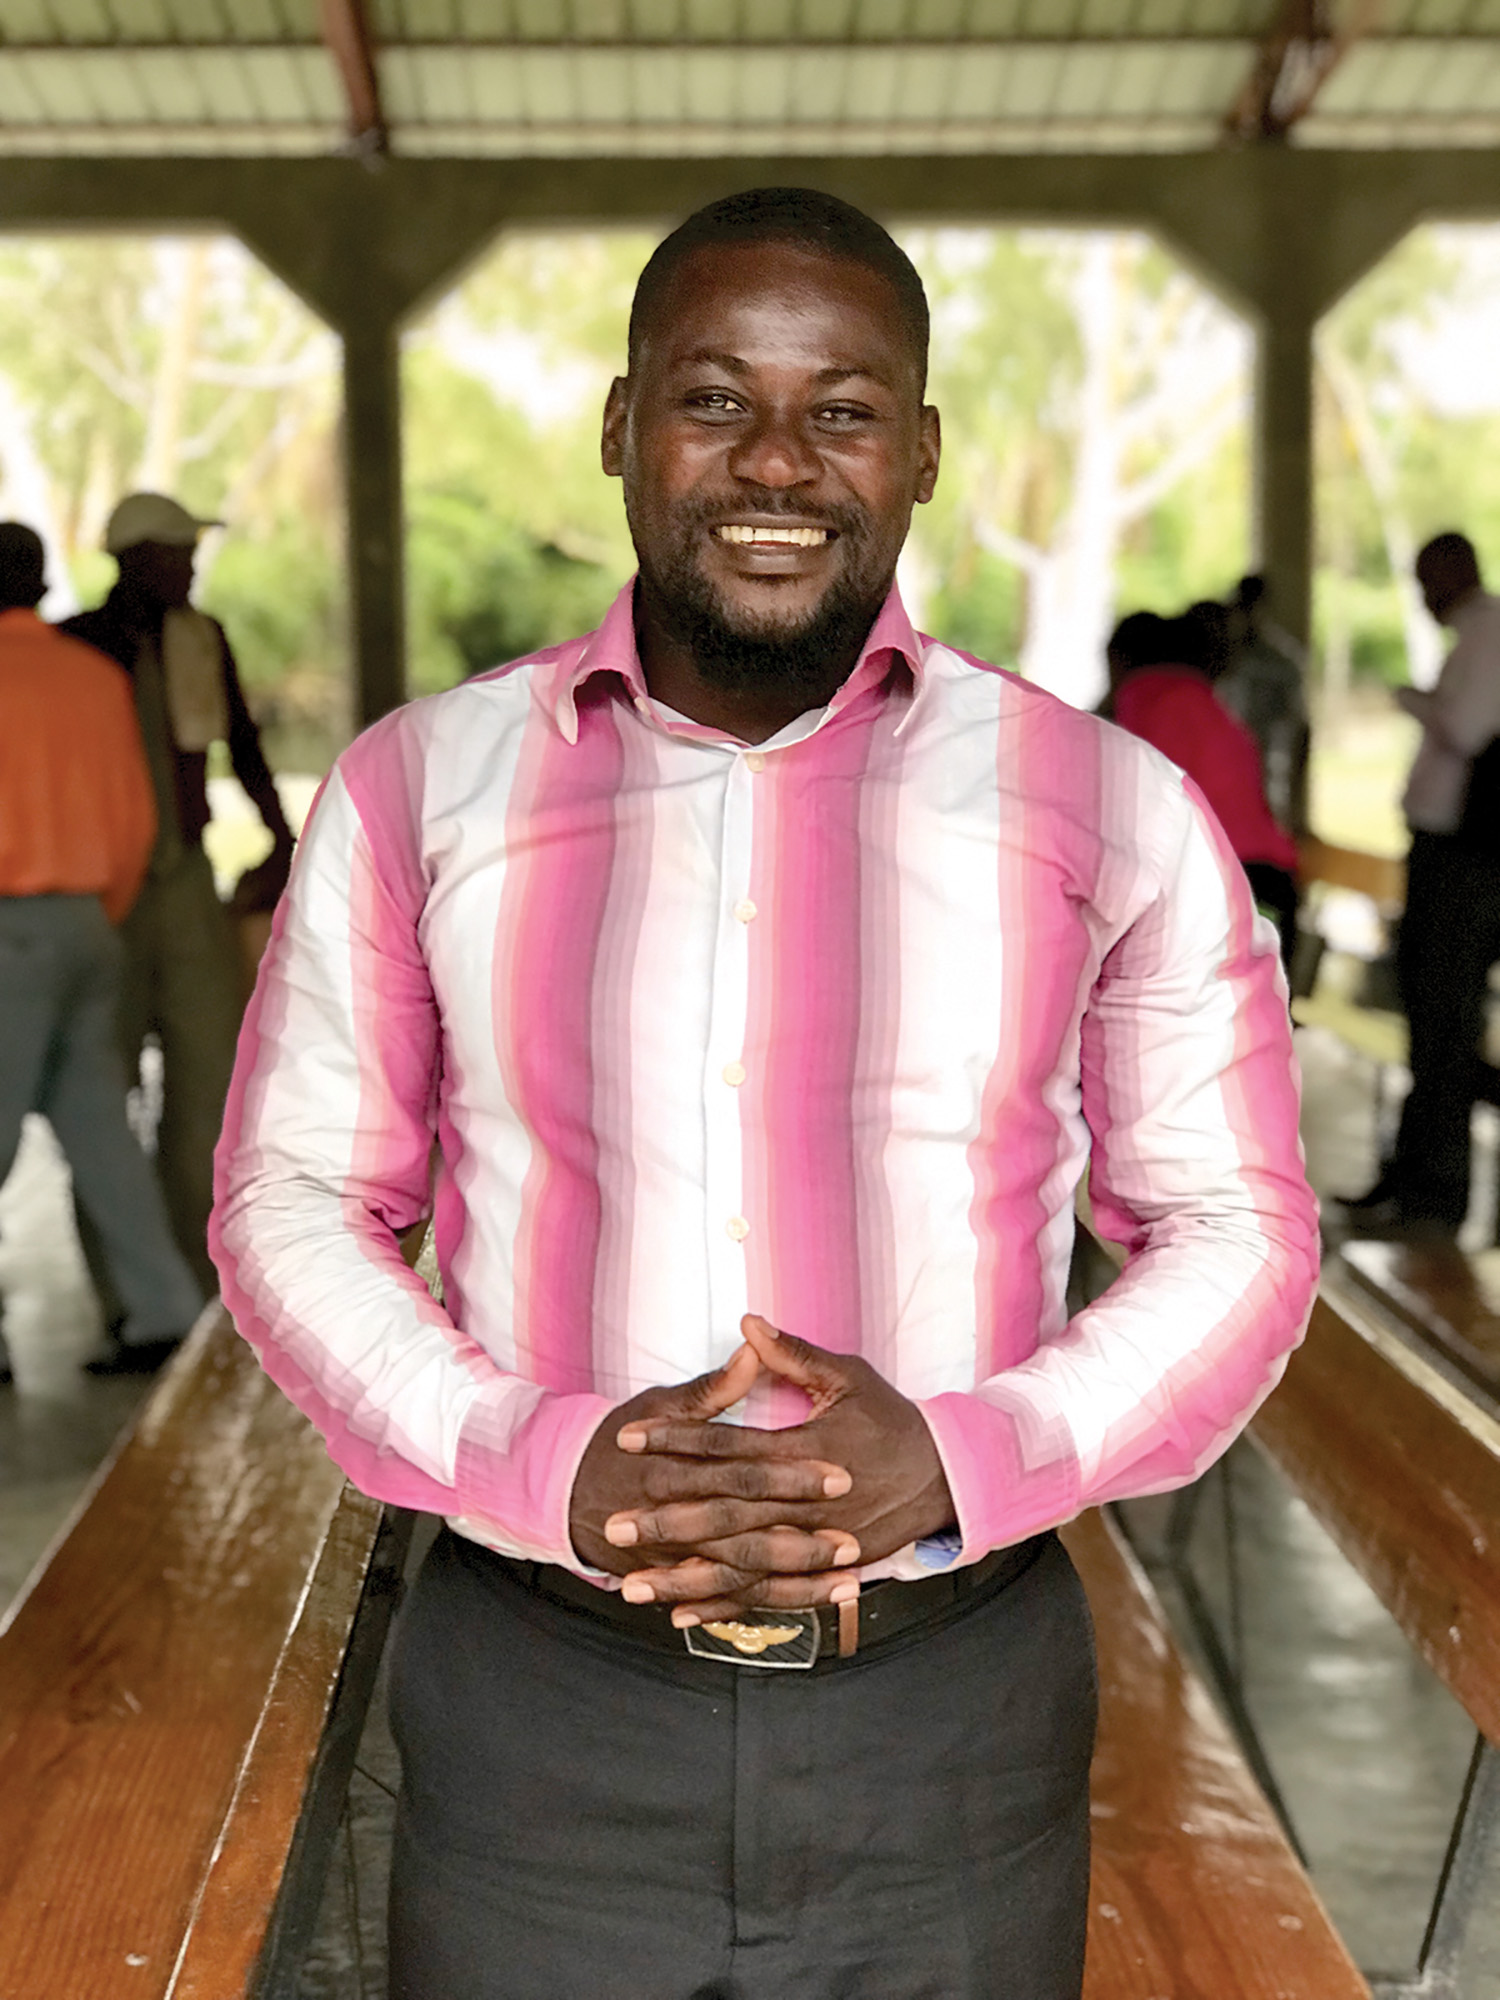 Remember Pastor Cyriaque Joseph Matin from our church and school in Fauche, Haiti, in your prayers and our other pastors, as well.